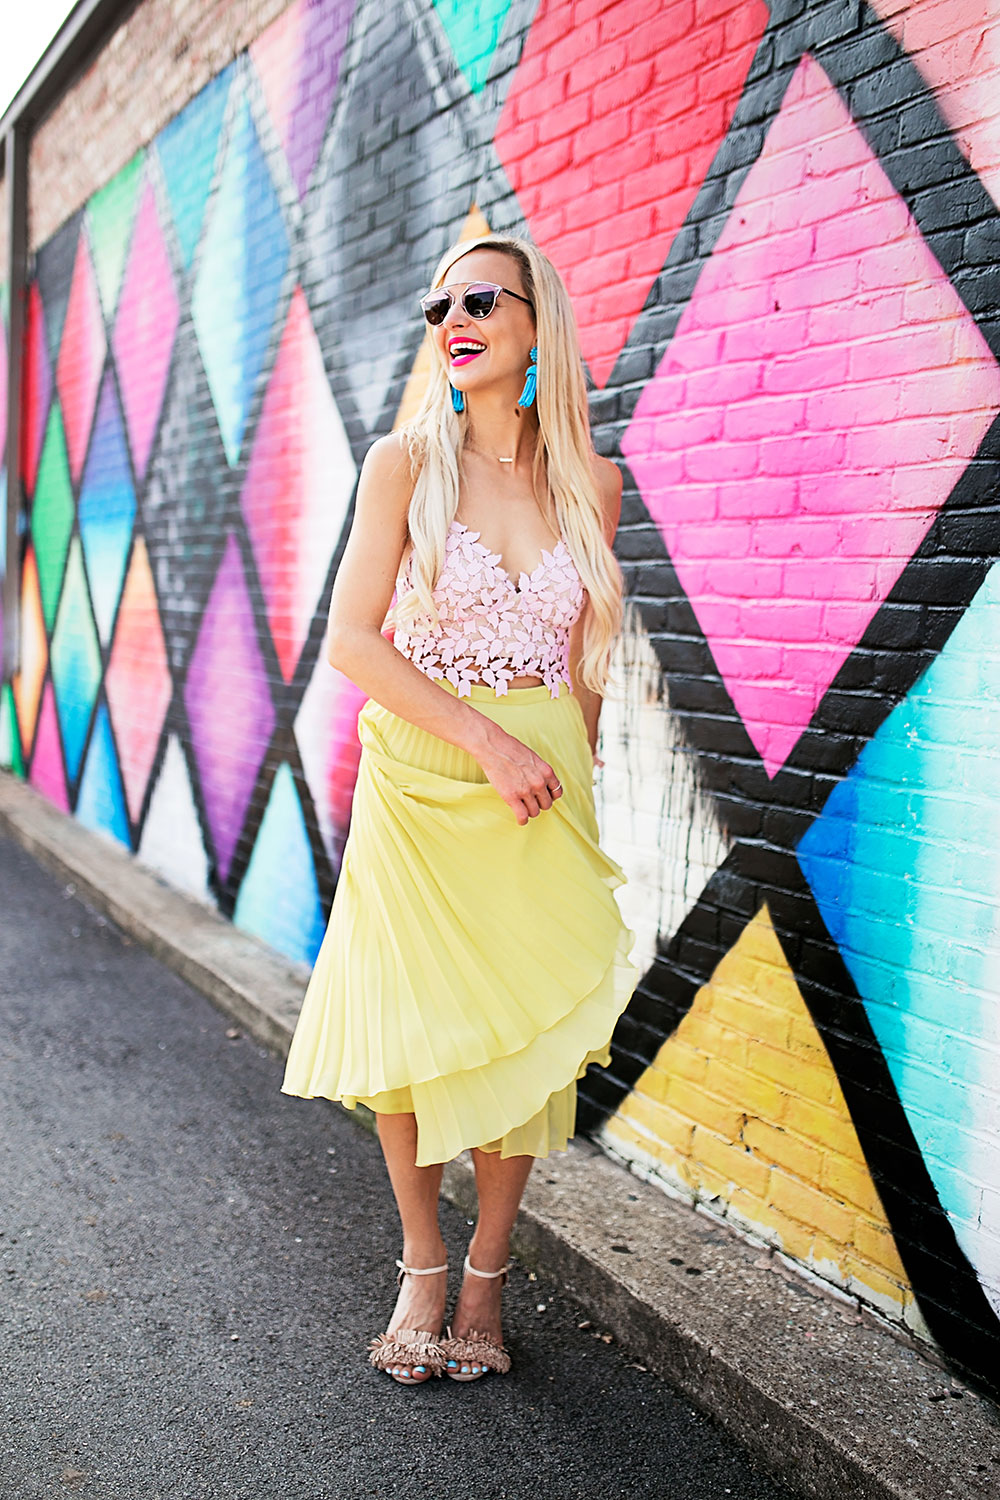 vandi-fair-dallas-fashion-blog-lauren-vandiver-southern-texas-travel-blogger-color-colorful-nordstrom-topshop-chiffon-pleated-midi-skirt-neon-yellow-bardot-flora-lace-crop-top-7